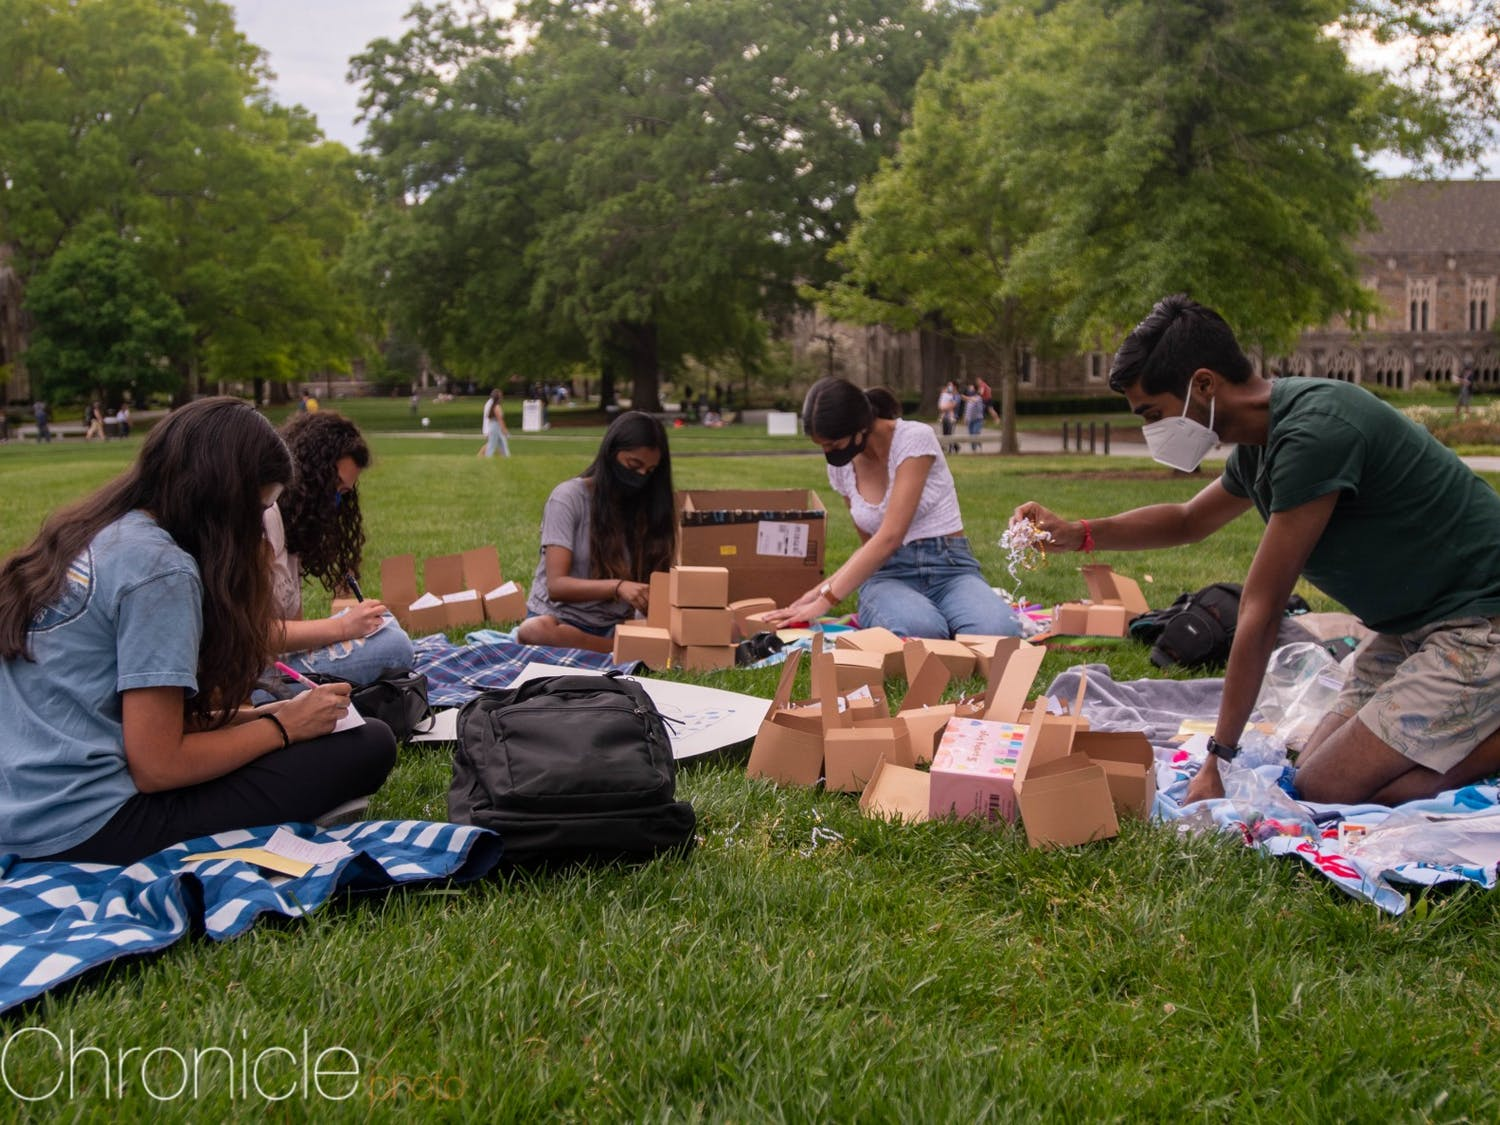 """Campus students decided to use their beautiful spring days to make care packages together for Duke students to use during finals. """"While we made these packages to help others feel cared for, I found the act of making the packages in the sun on the quad therapeutic in and of itself. I haven't been able to feel this way for a while, especially with the spring I lost last year,"""" said Hindu Students Association co-president Sarabesh Natarajan."""